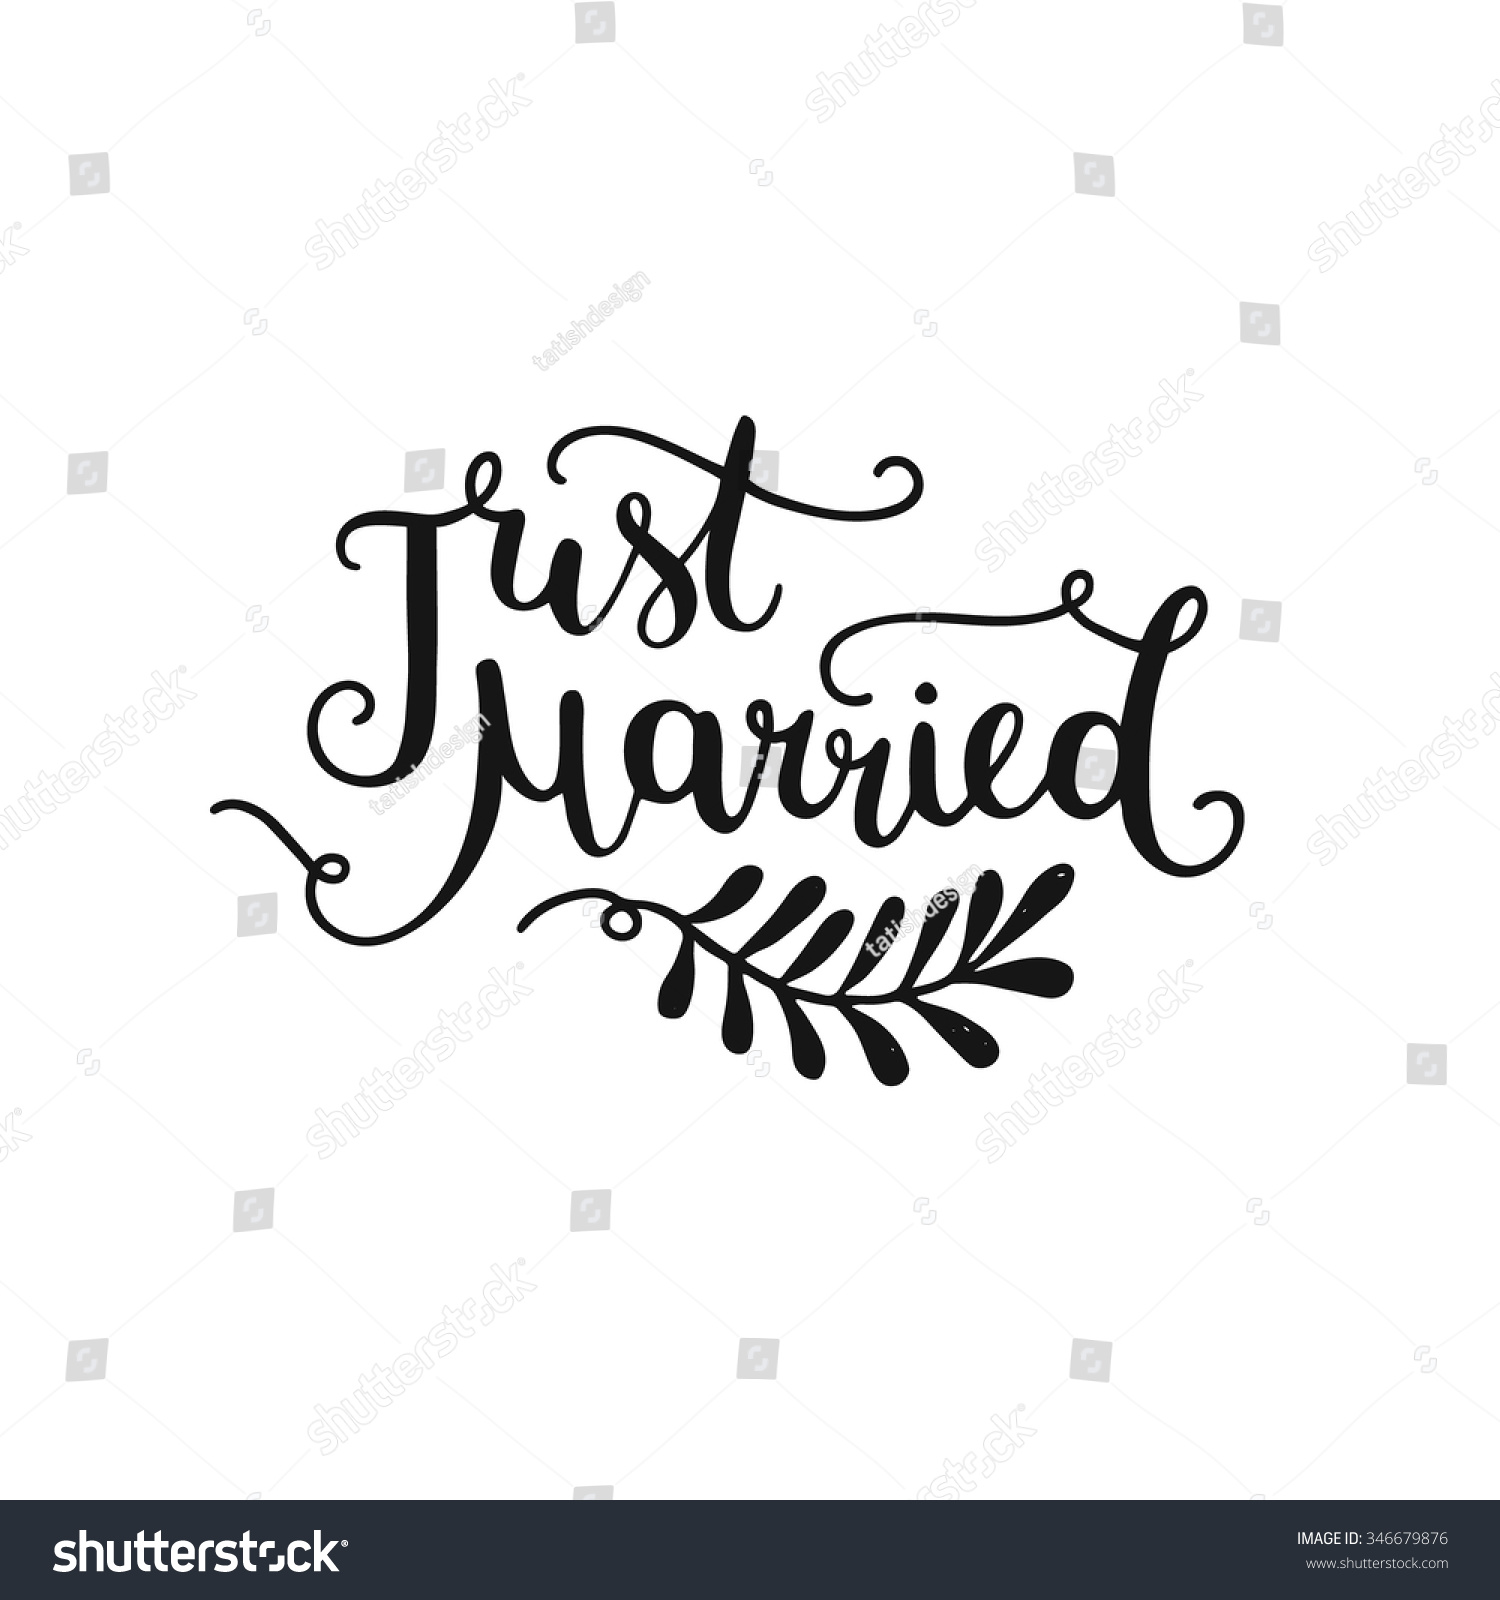 Just Married Hand Drawn Lettering Design Stock Vector